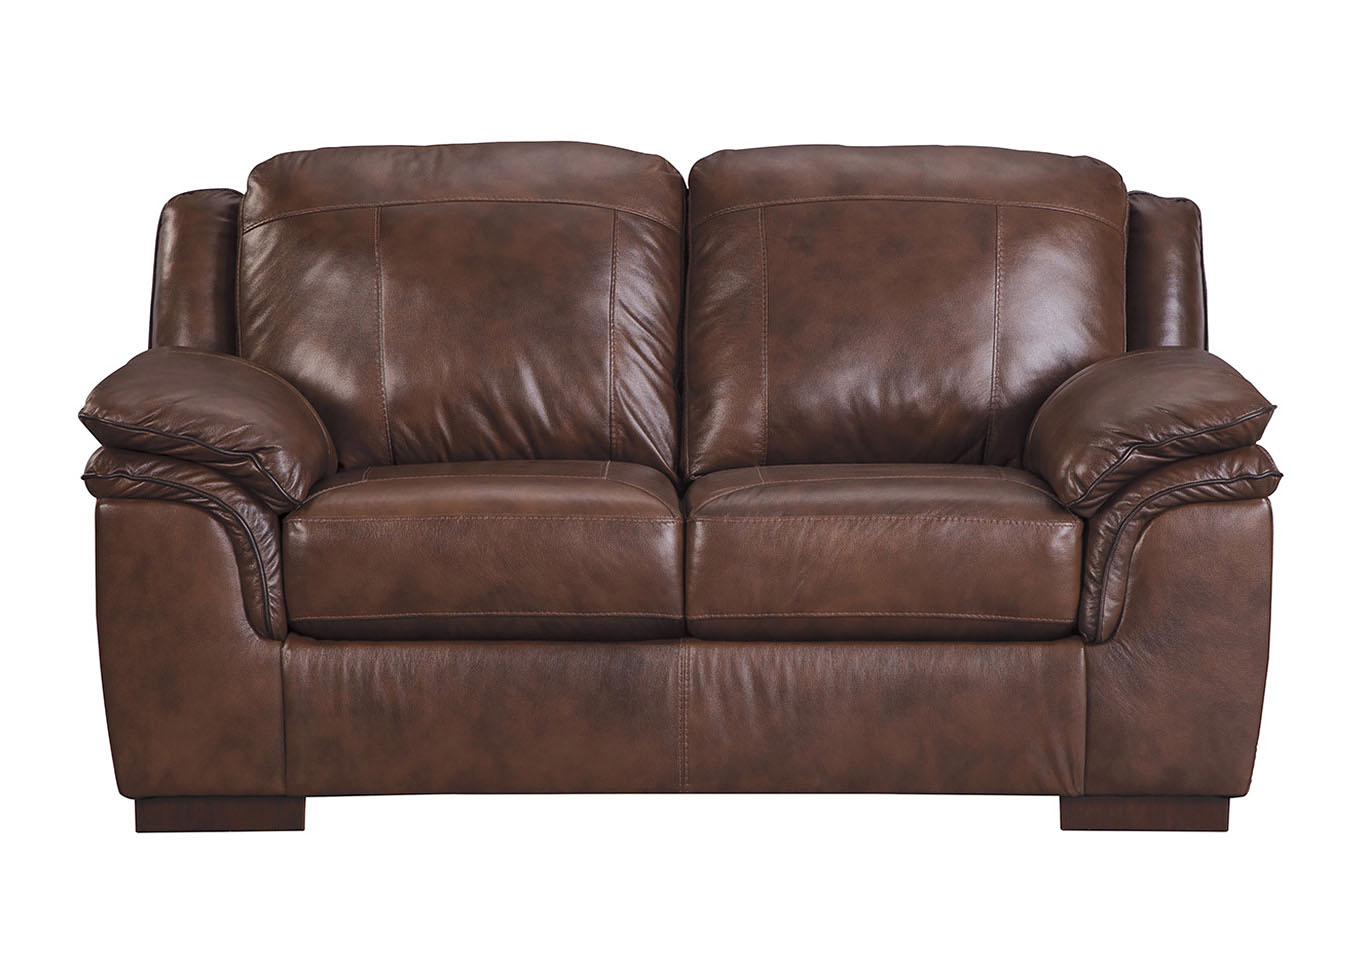 Islebrook Canyon Loveseat,ABF Signature Design by Ashley